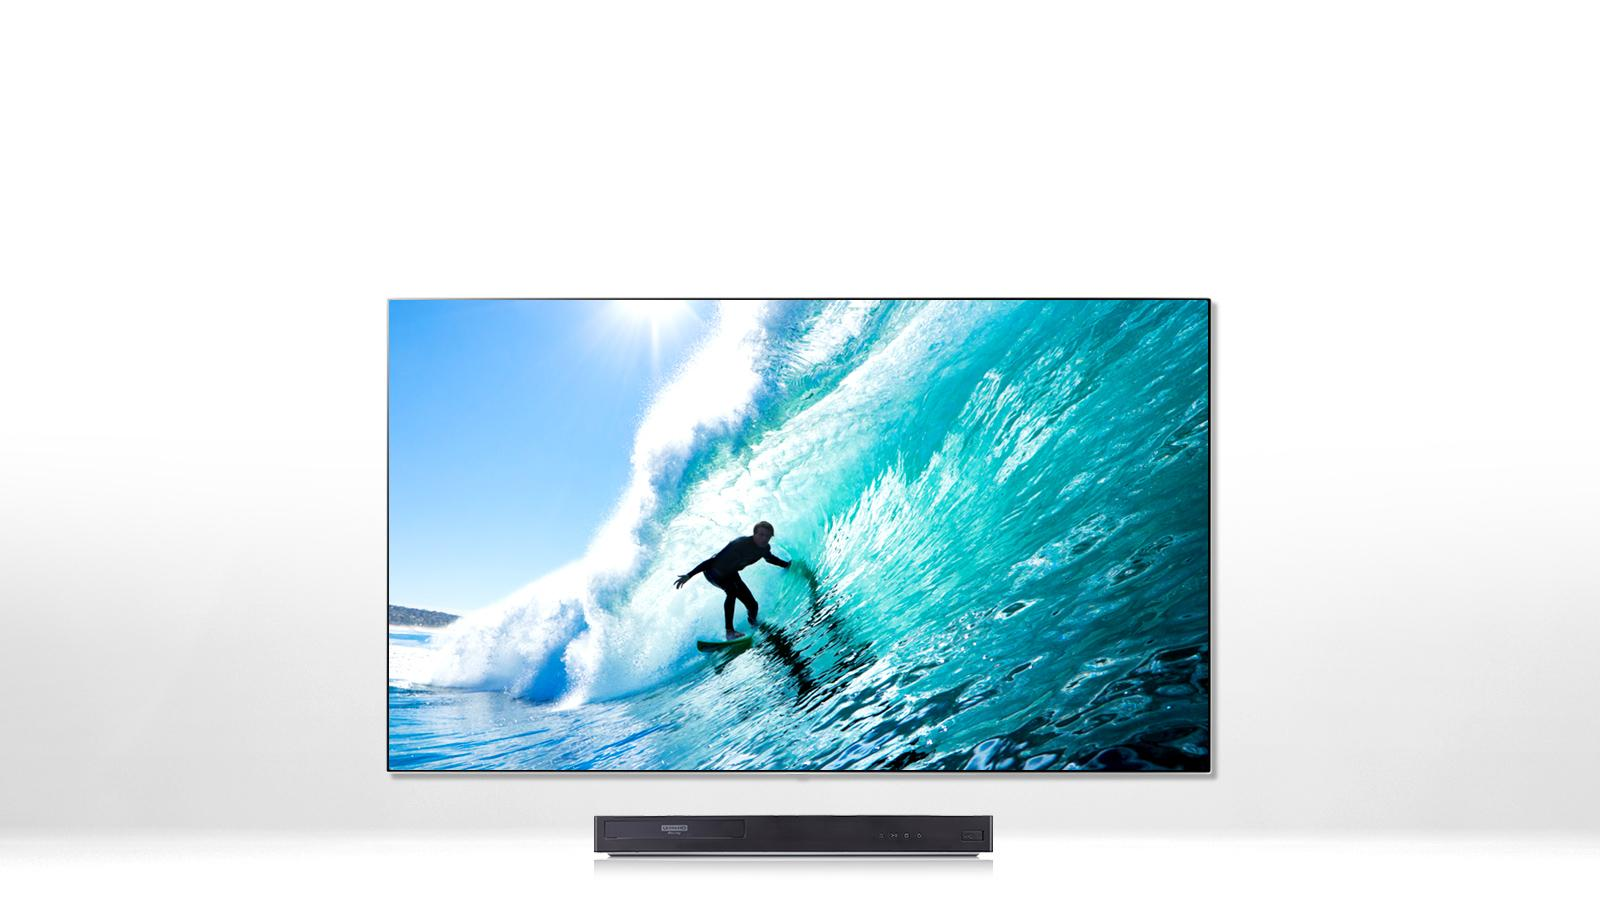 Lg up970 save up to 15000 this black friday lg usa 4k disc playback sciox Image collections